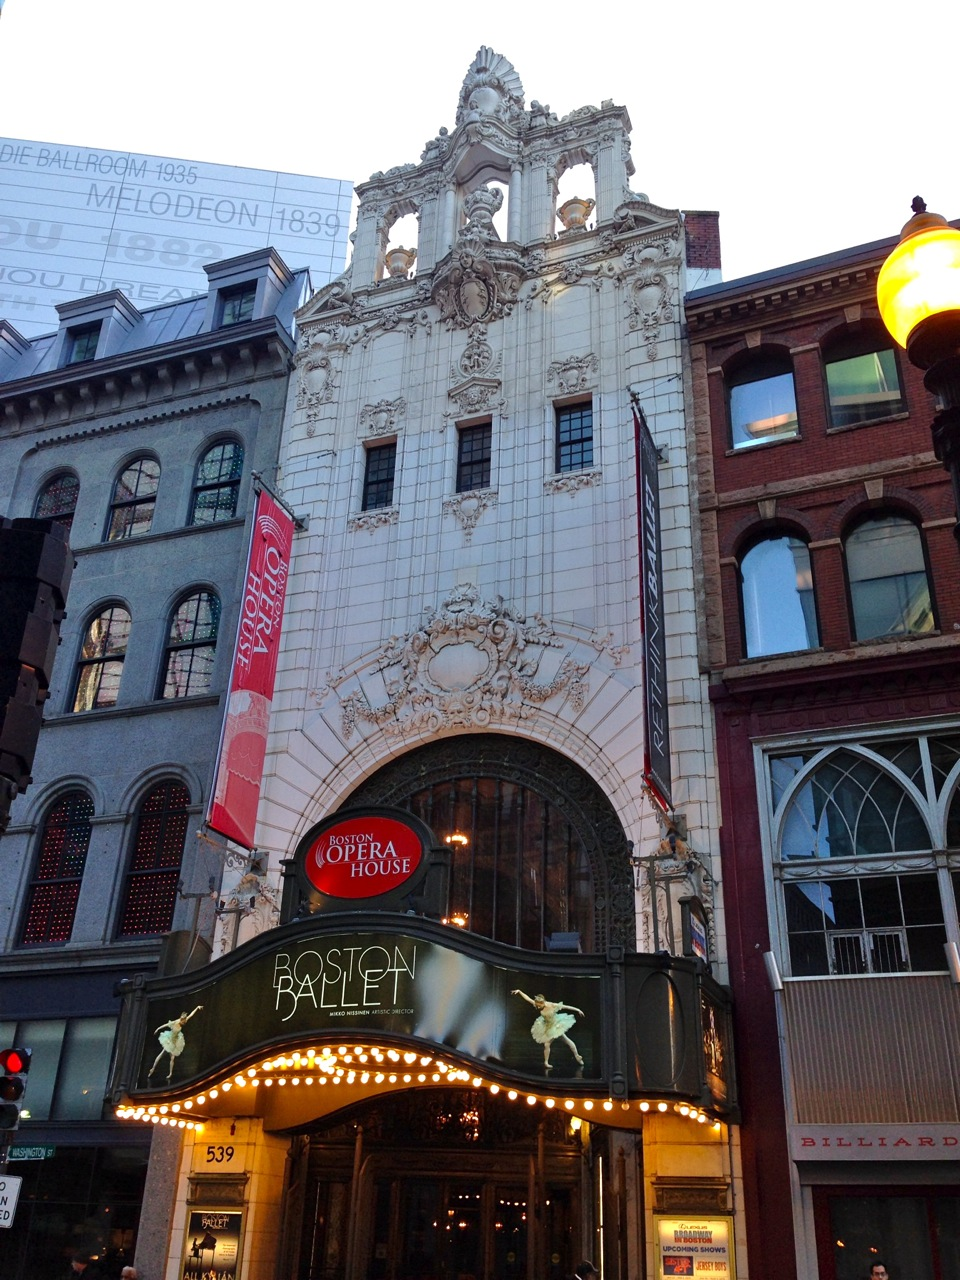 The Boston Opera House is one of the finest examples of the vaudeville circuit palace at the pinnacle of its development. Designed in a combination of French and Italian styles by Thomas White Lamb, one of the foremost theatre architects of his day (Photo by Michelle Aldredge)